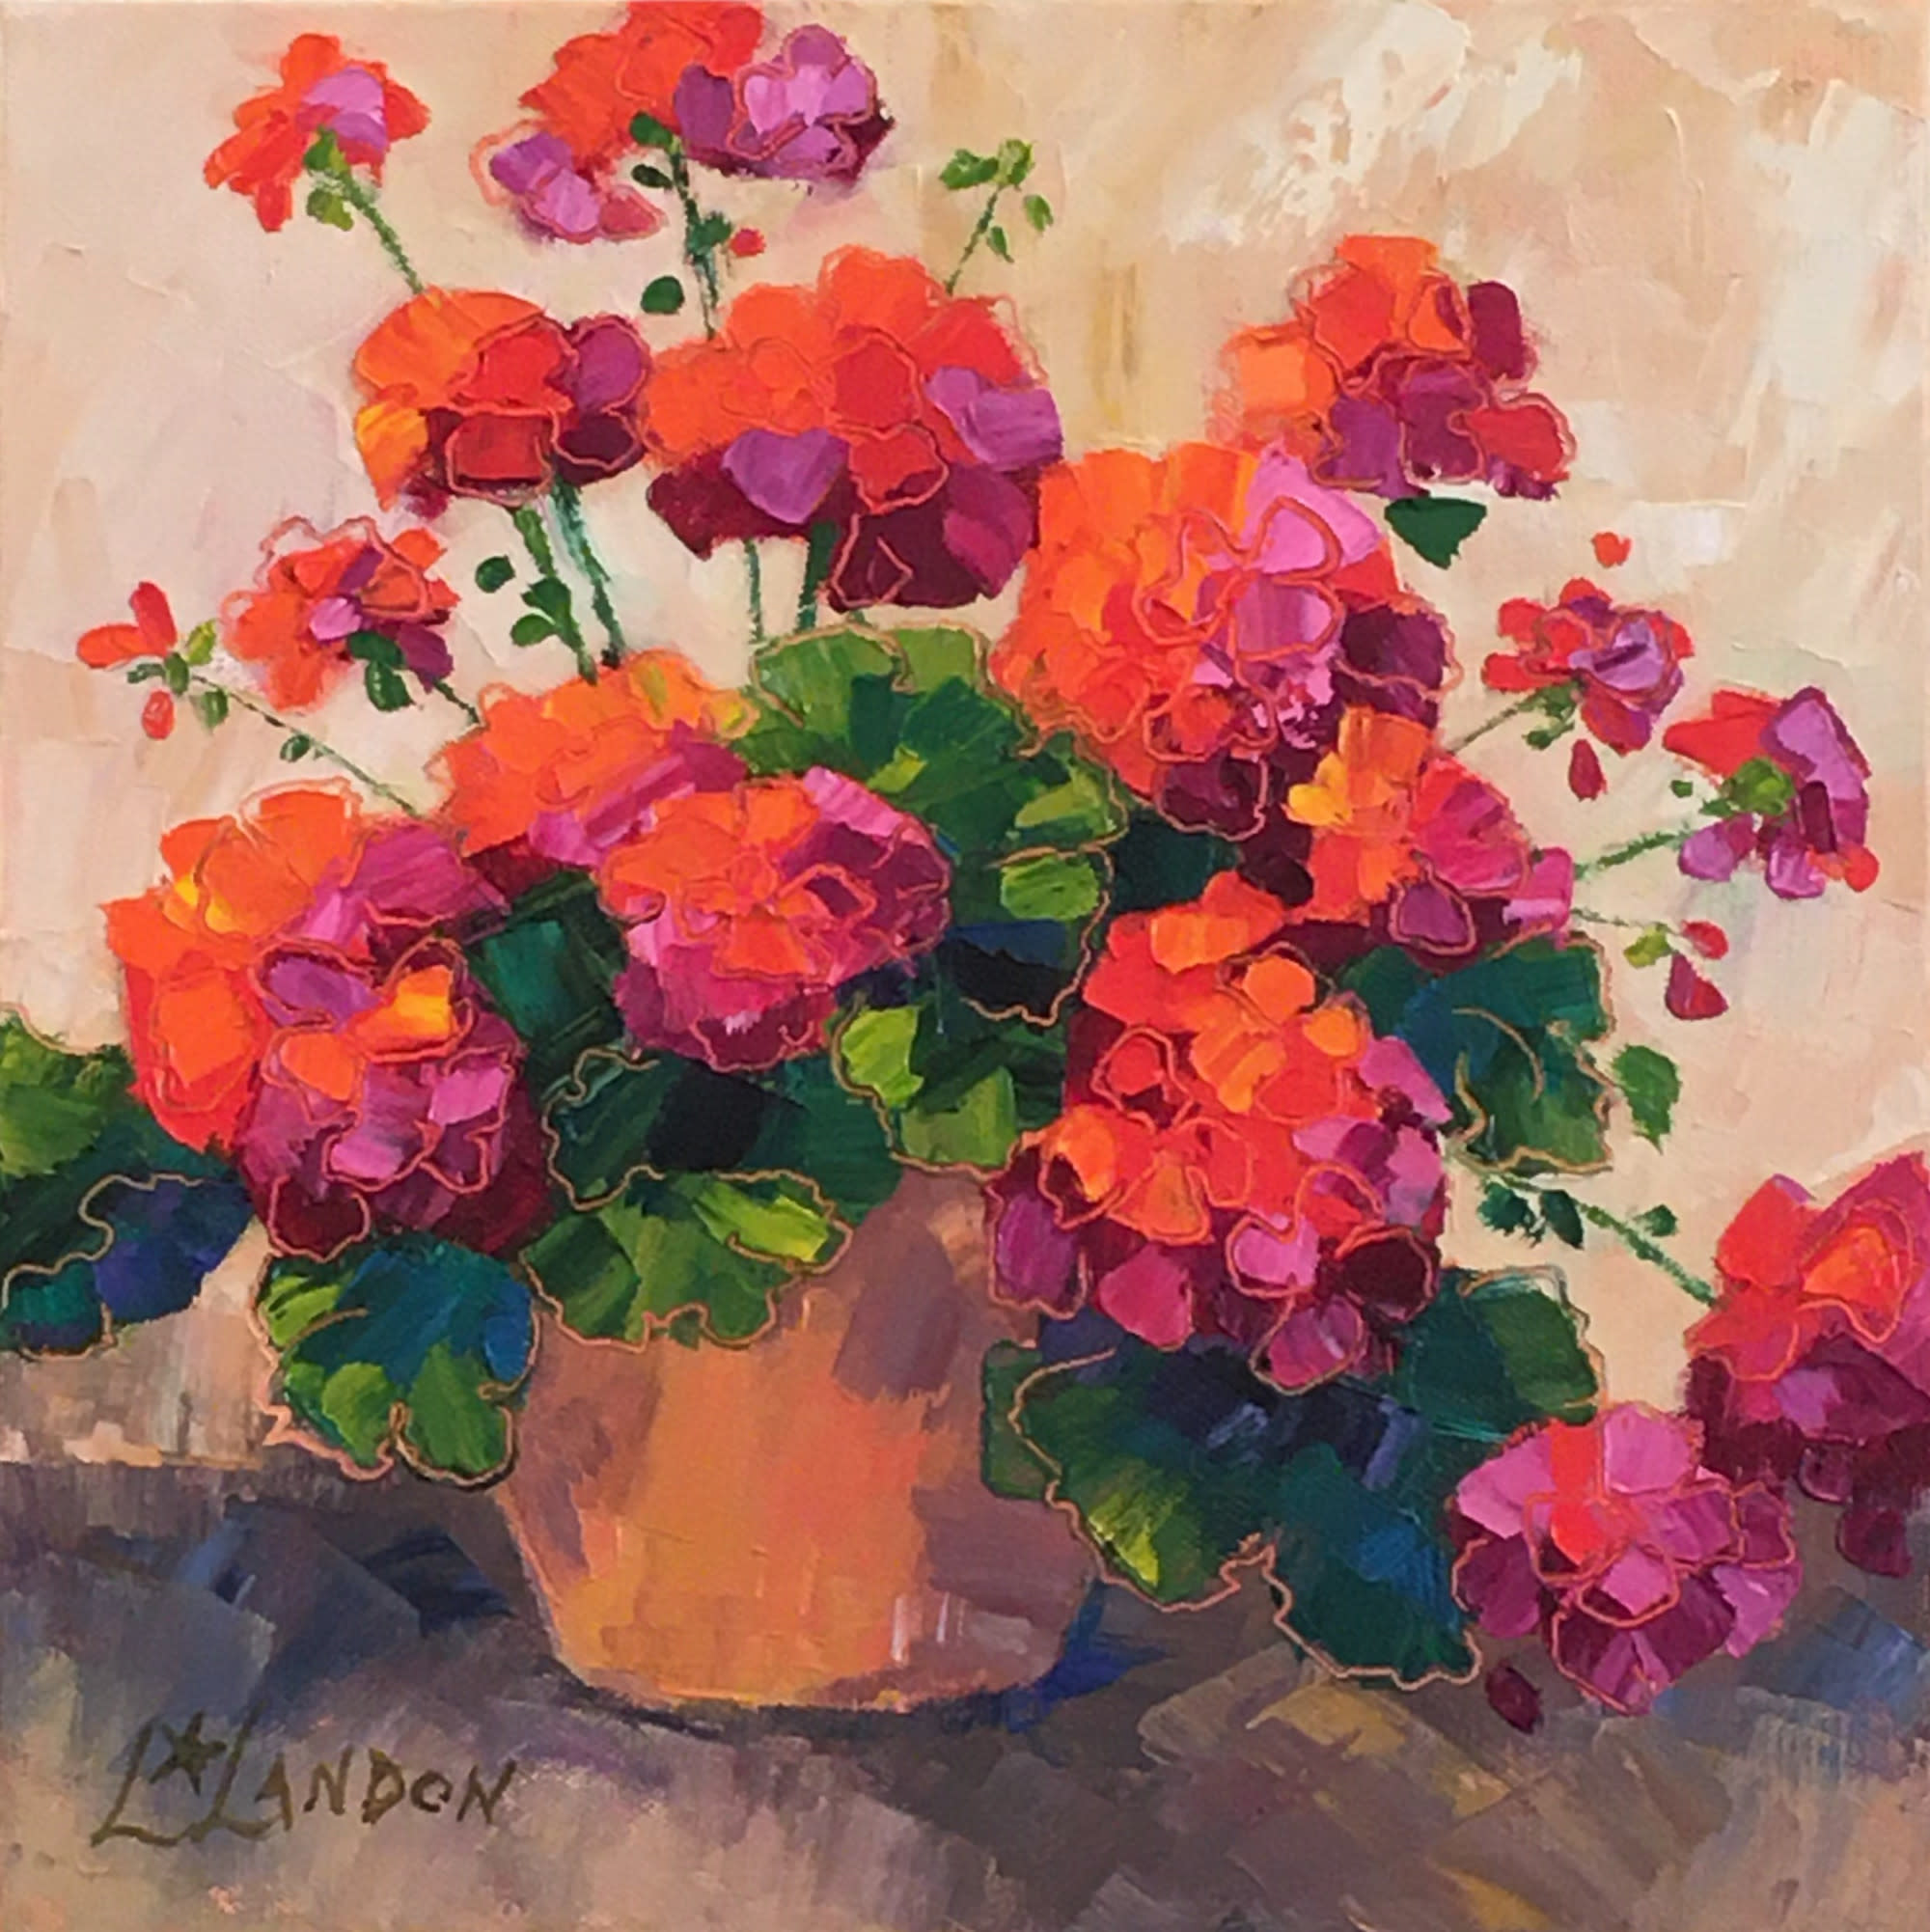 Sizzling summer blooms 4 asf orig wbst mz3jxc